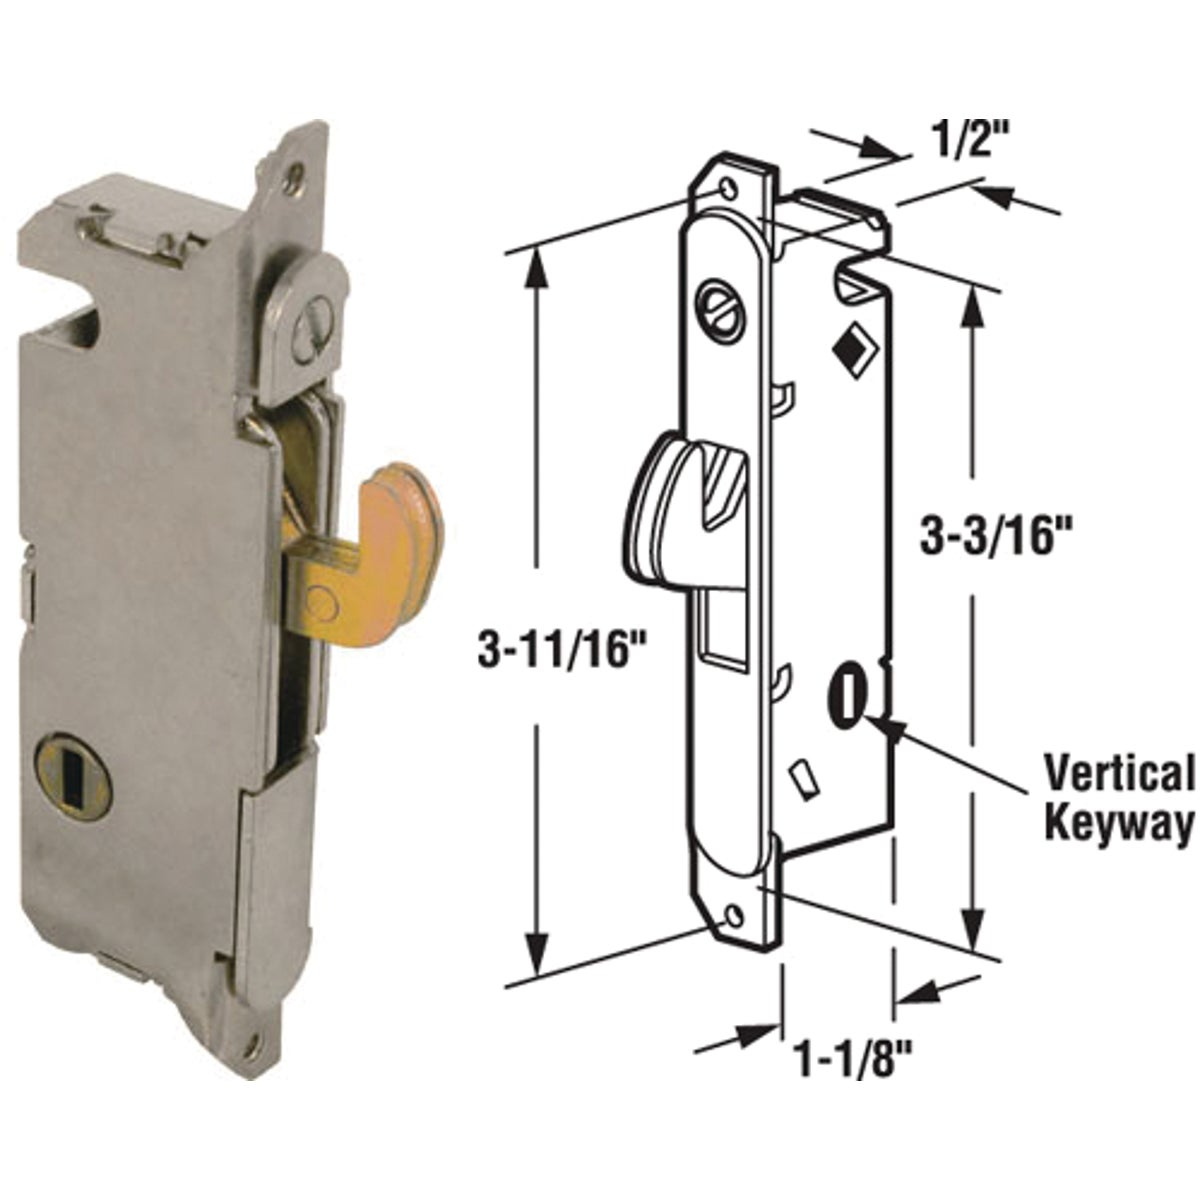 SLIDNG DOOR MORTISE LOCK - 15410 by Prime Line Products